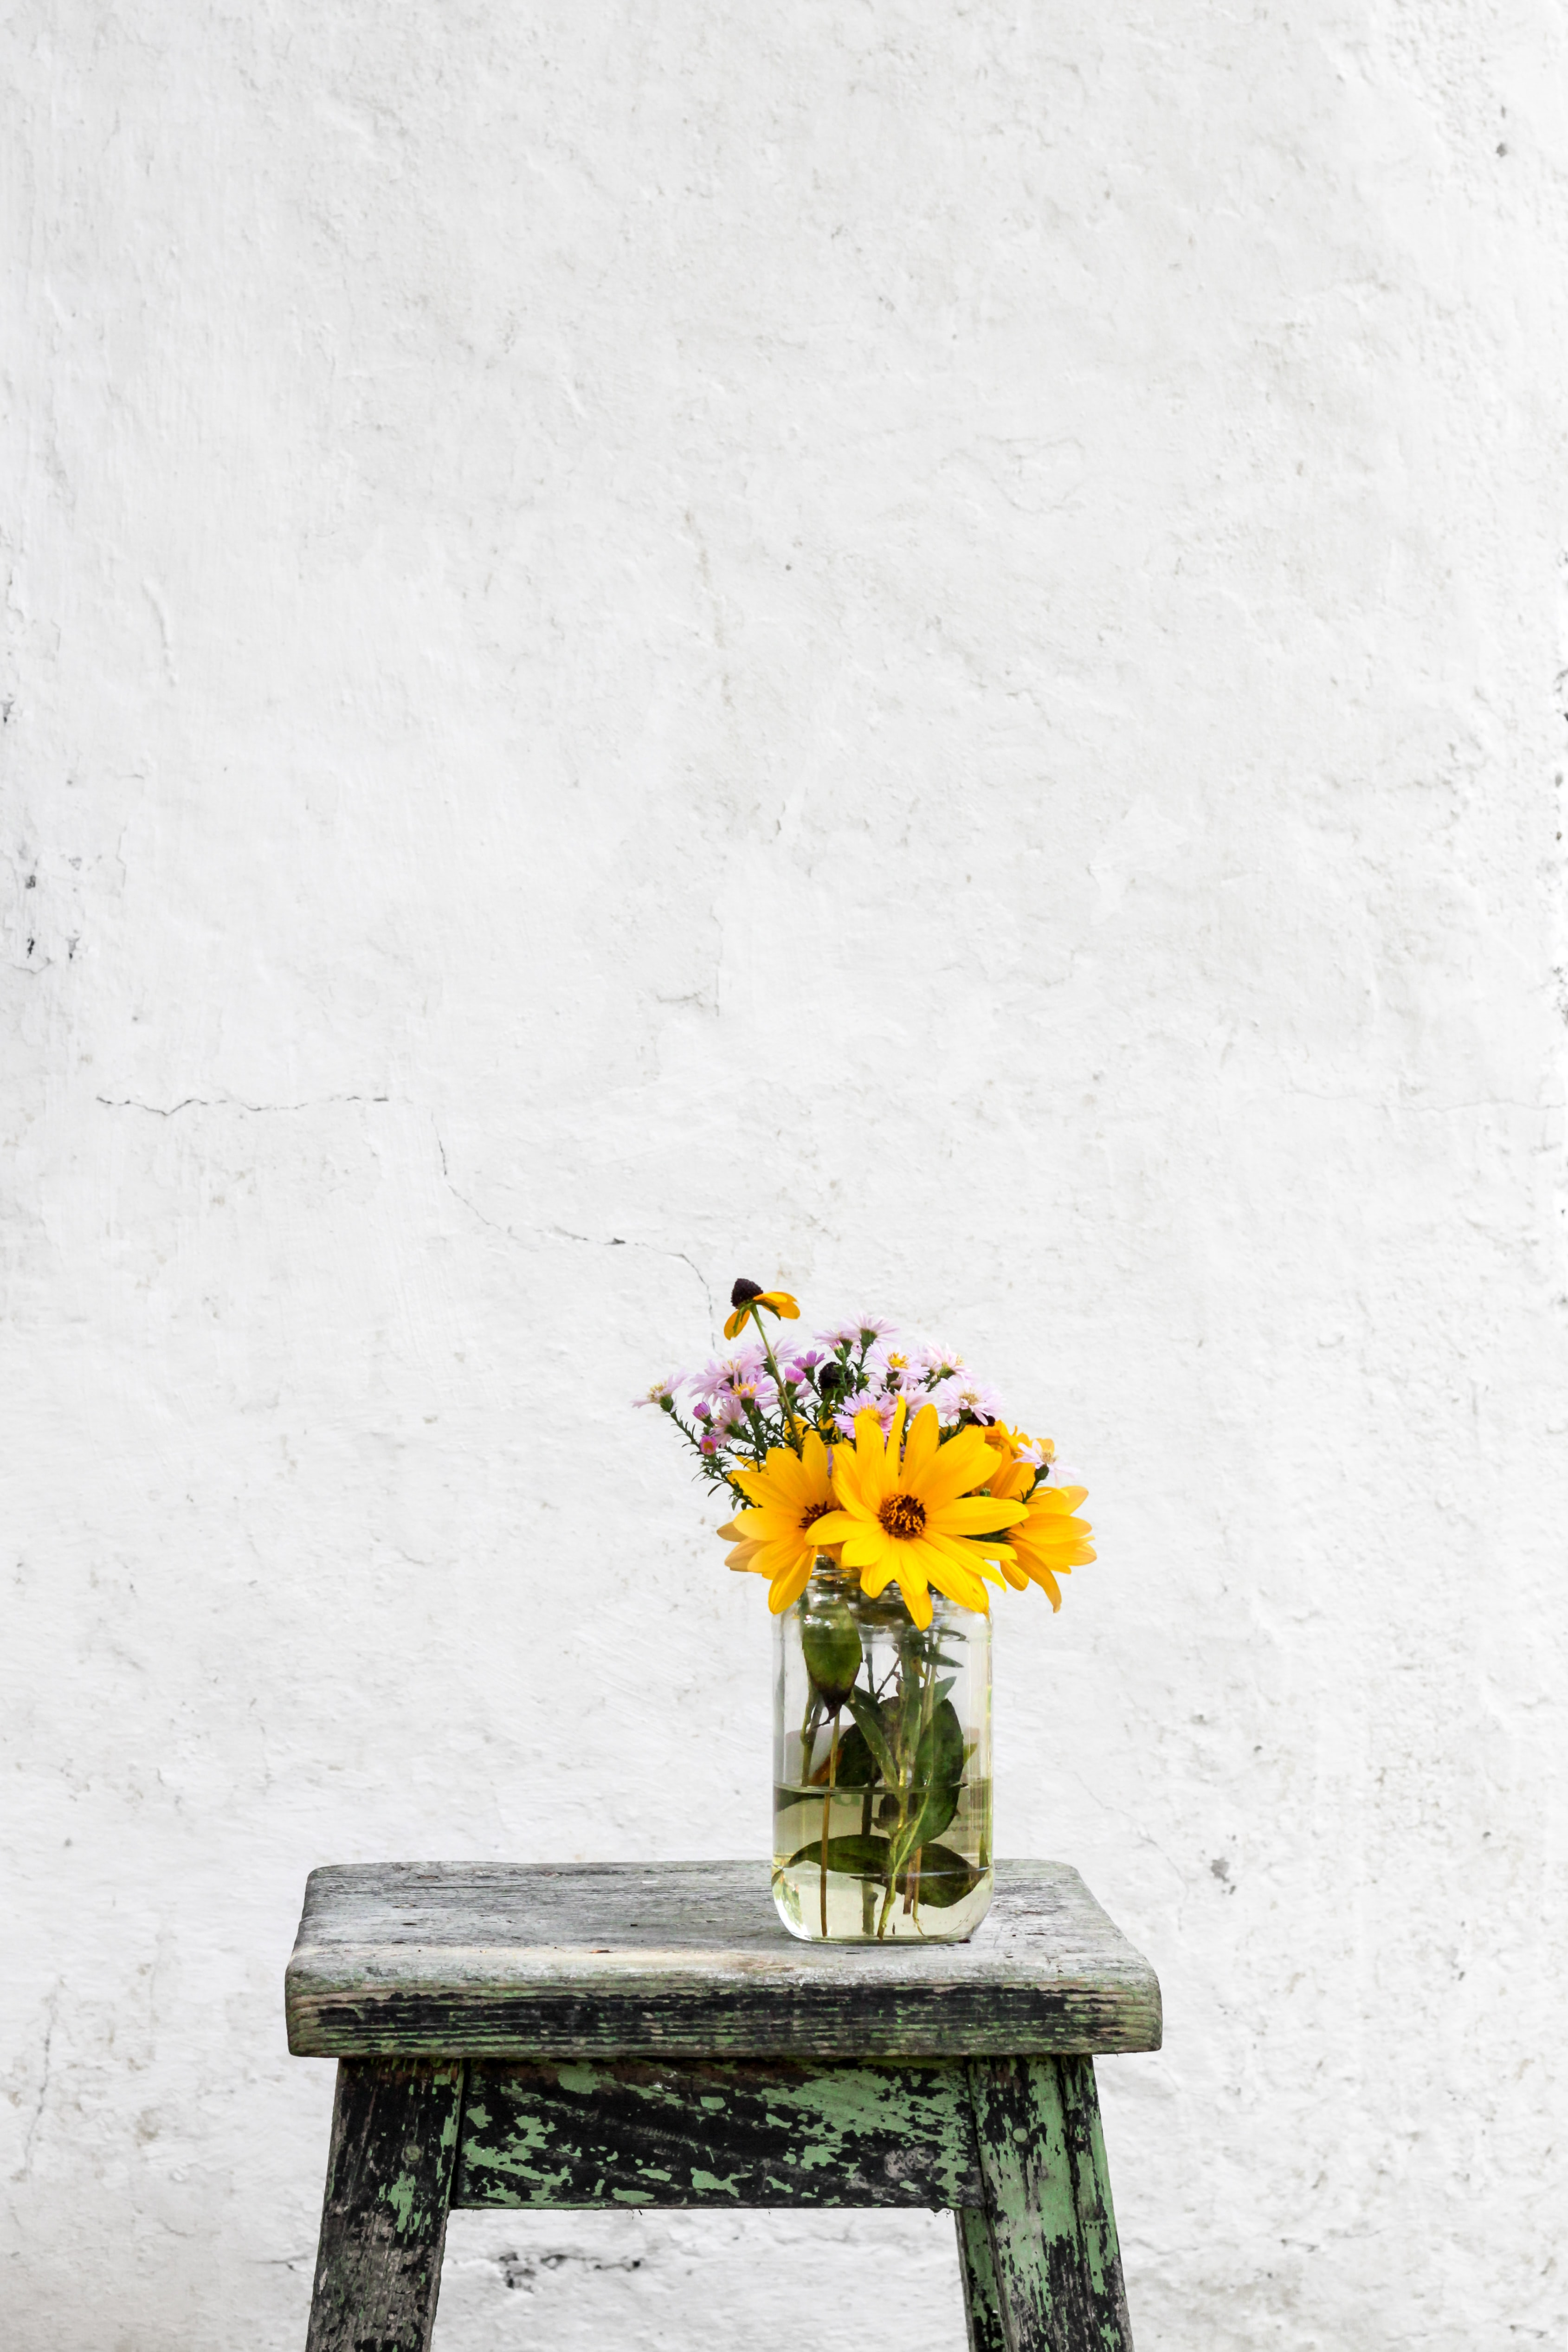 A glass vase with large yellow and small pink flowers on a worn-out stool against an old white wall